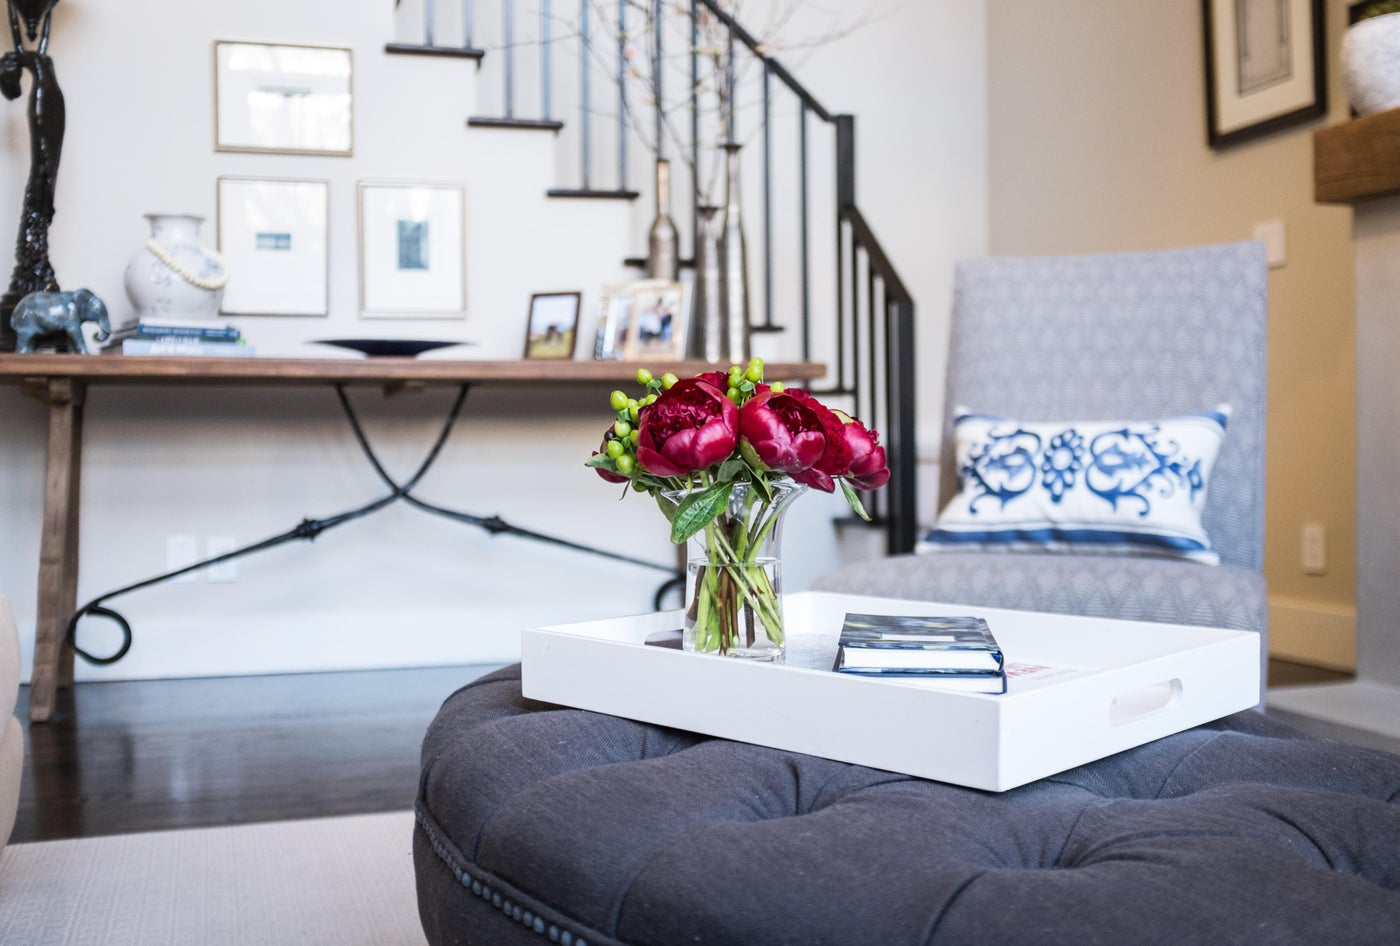 Living Room Ottoman with modern lacquer tray topped with peonies